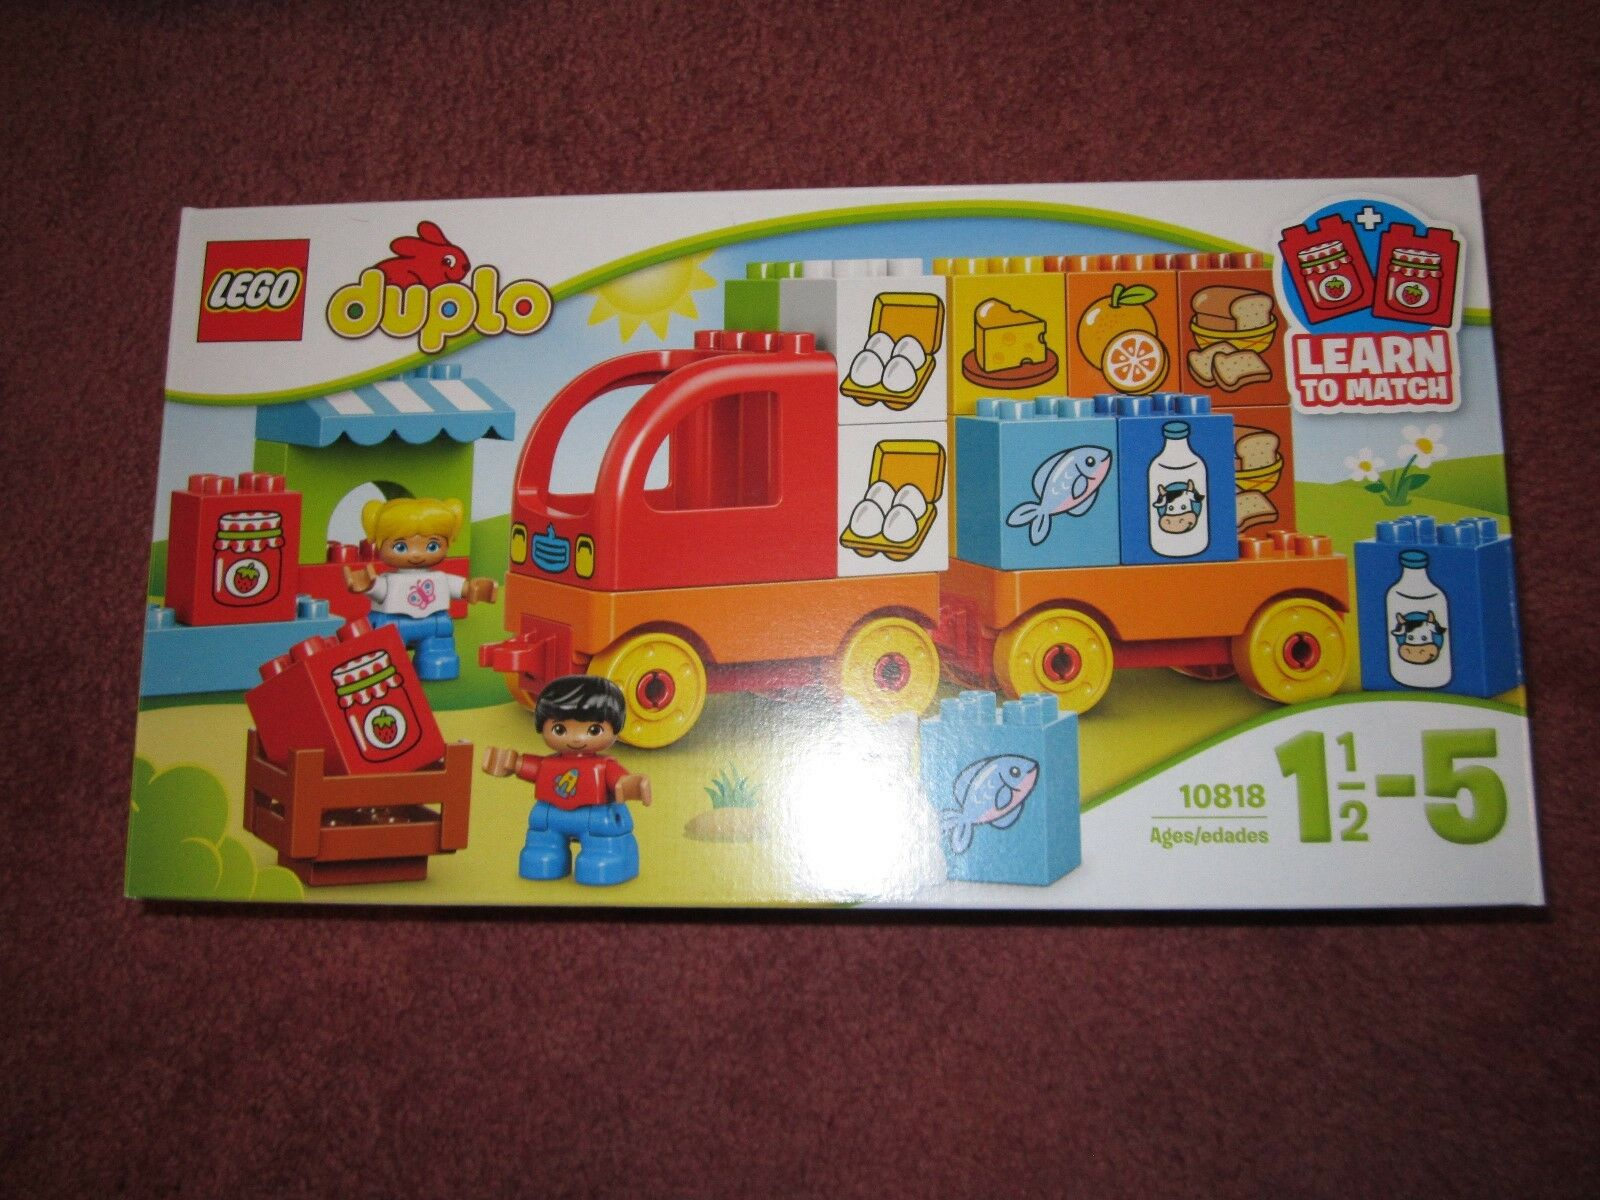 LEGO DUPLO MY MY MY FIRST TRUCK 10818 - SEE PHOTOS - NEW BOXED SEALED de8978